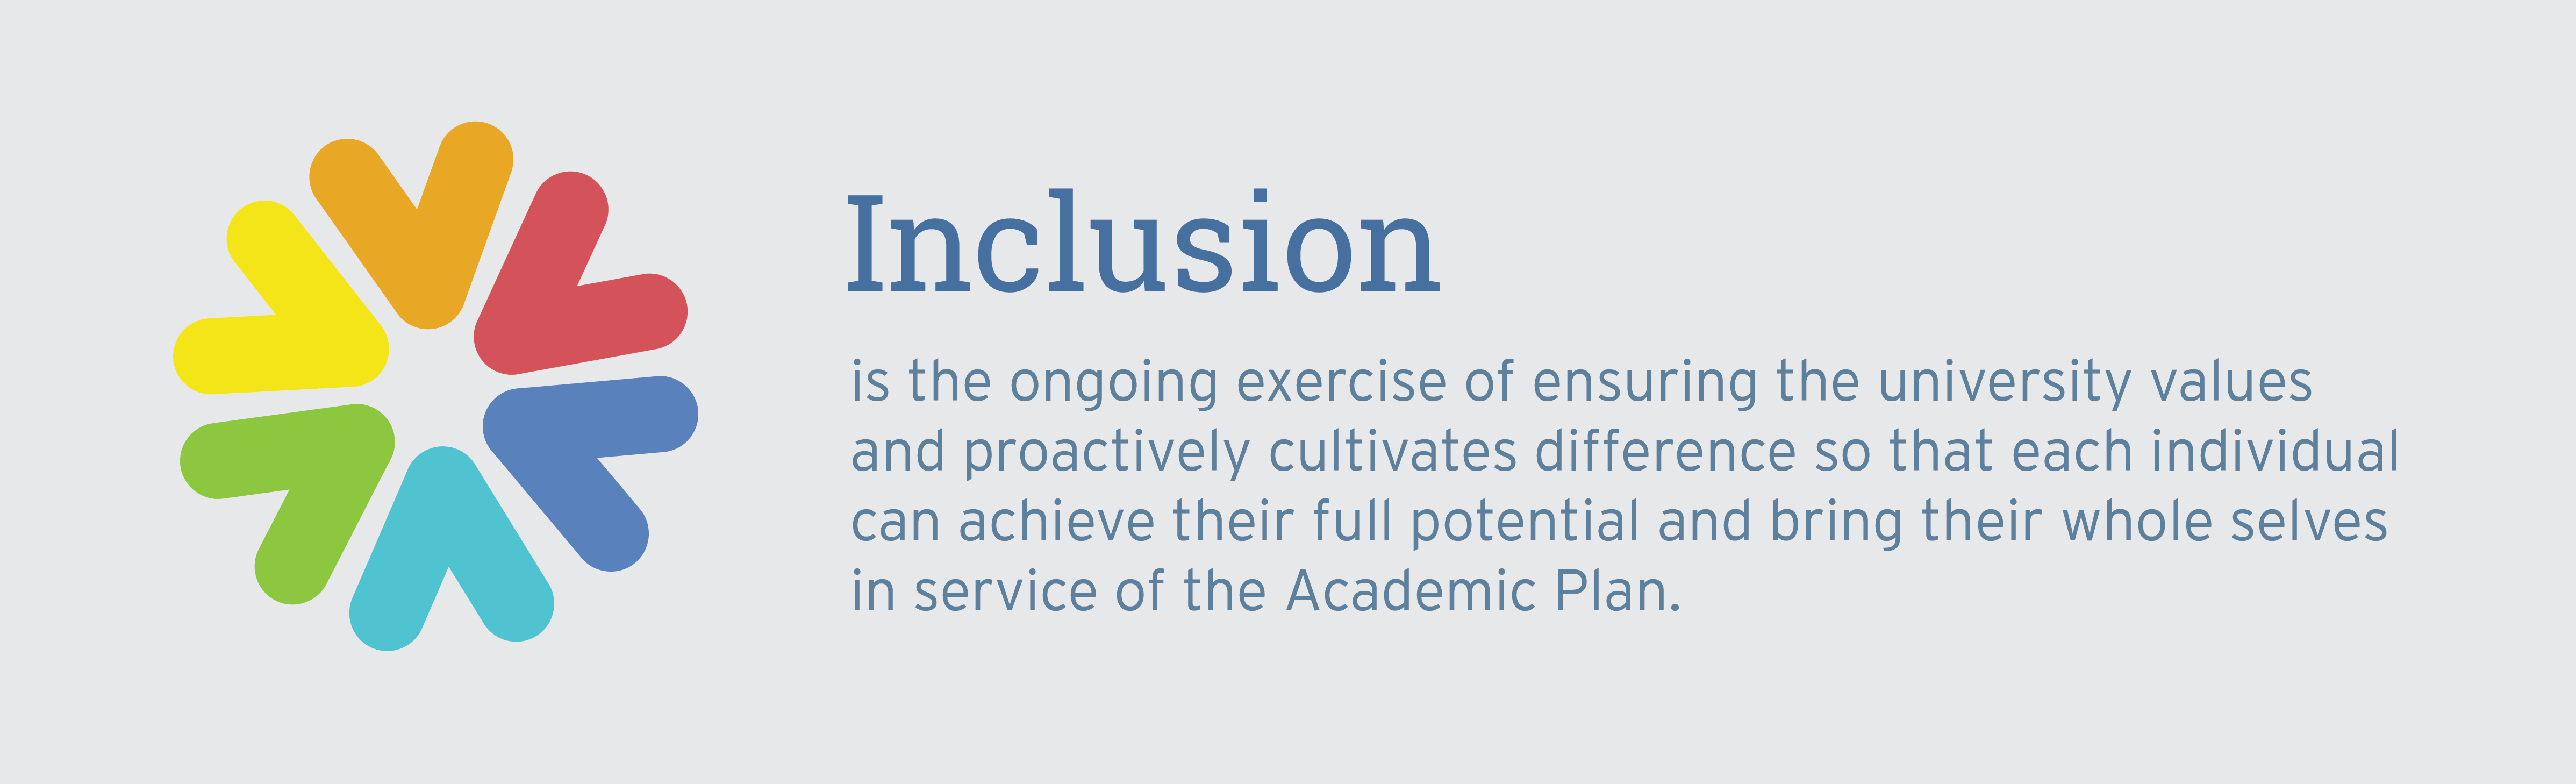 Our Enhanced Mandate - Inclusion Definition